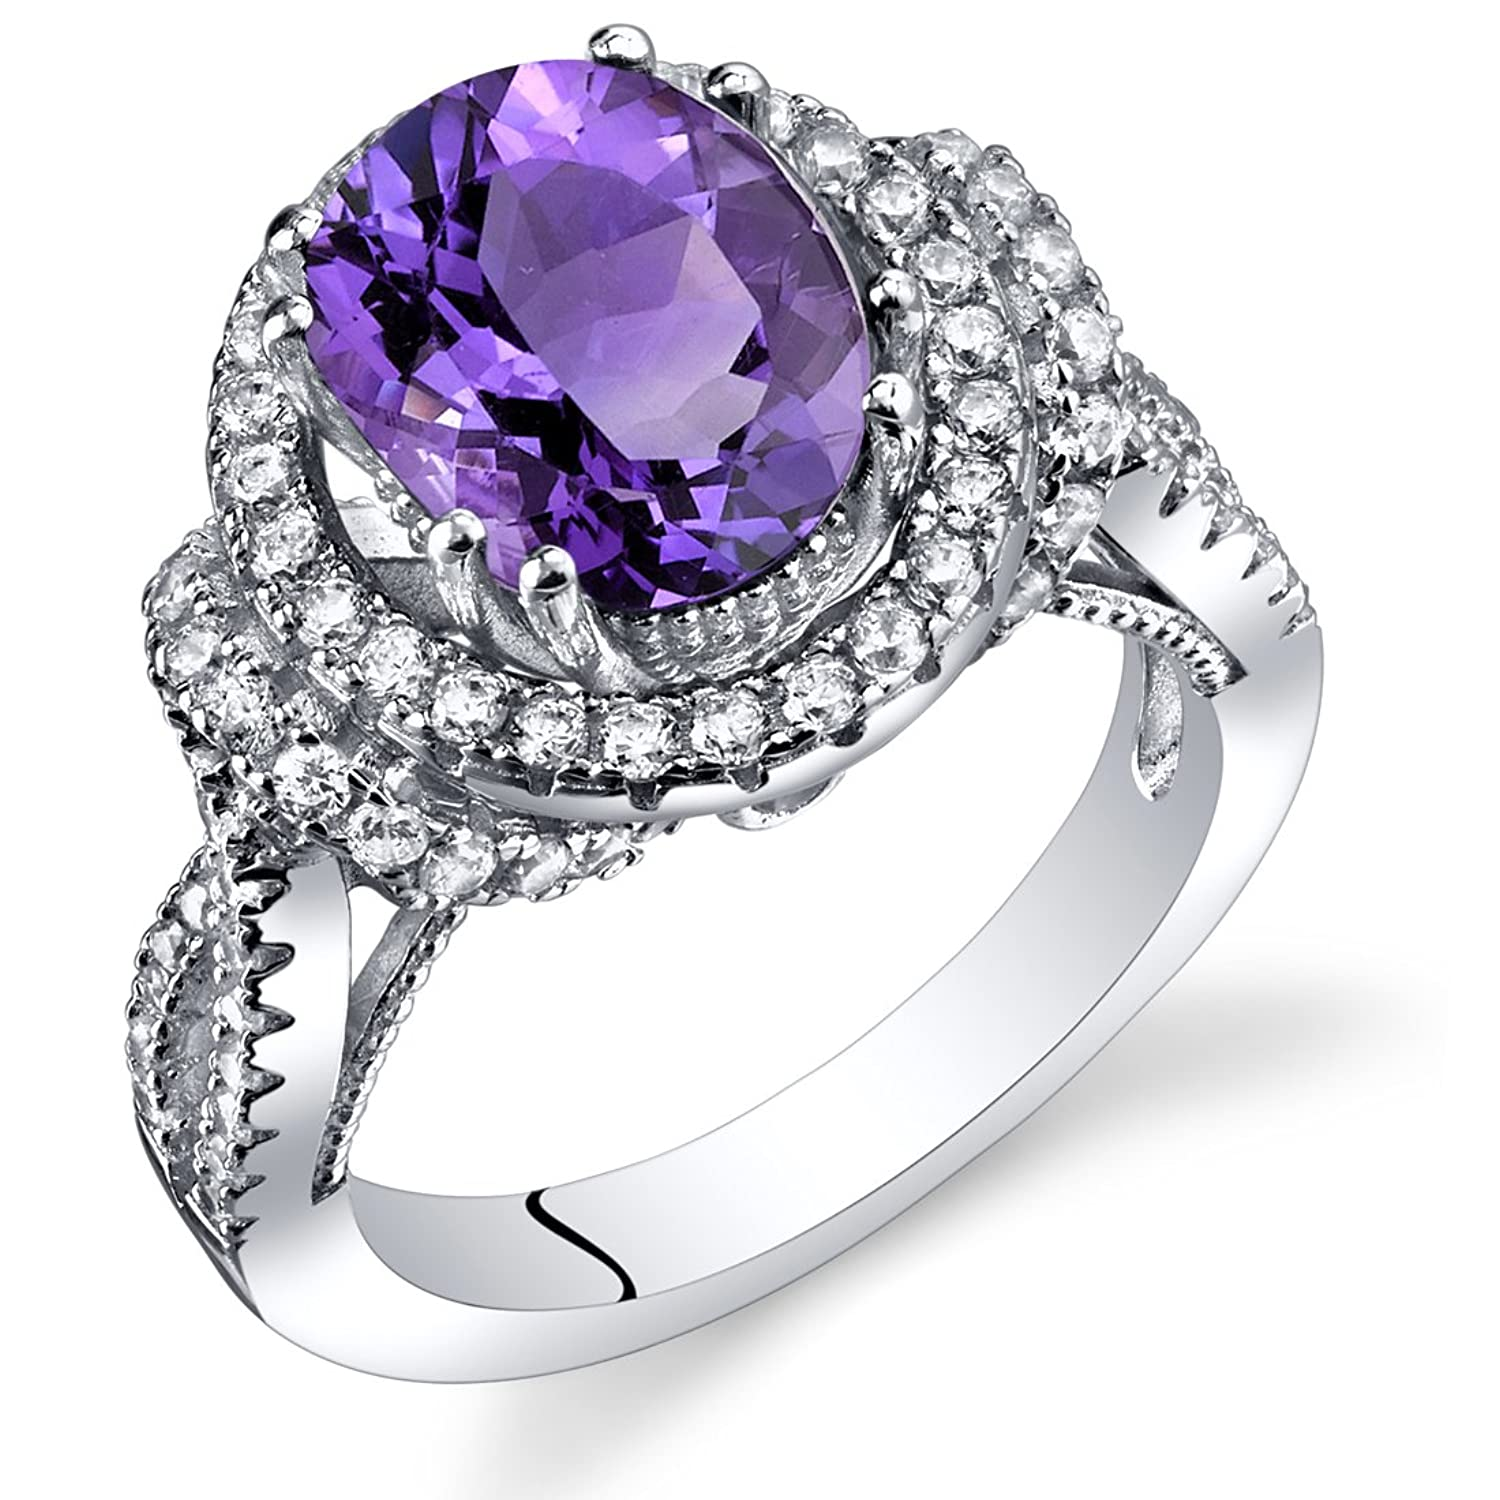 Amethyst Gallery Ring Sterling Silver Oval Shape 2.25 Carats Sizes 5 to 9